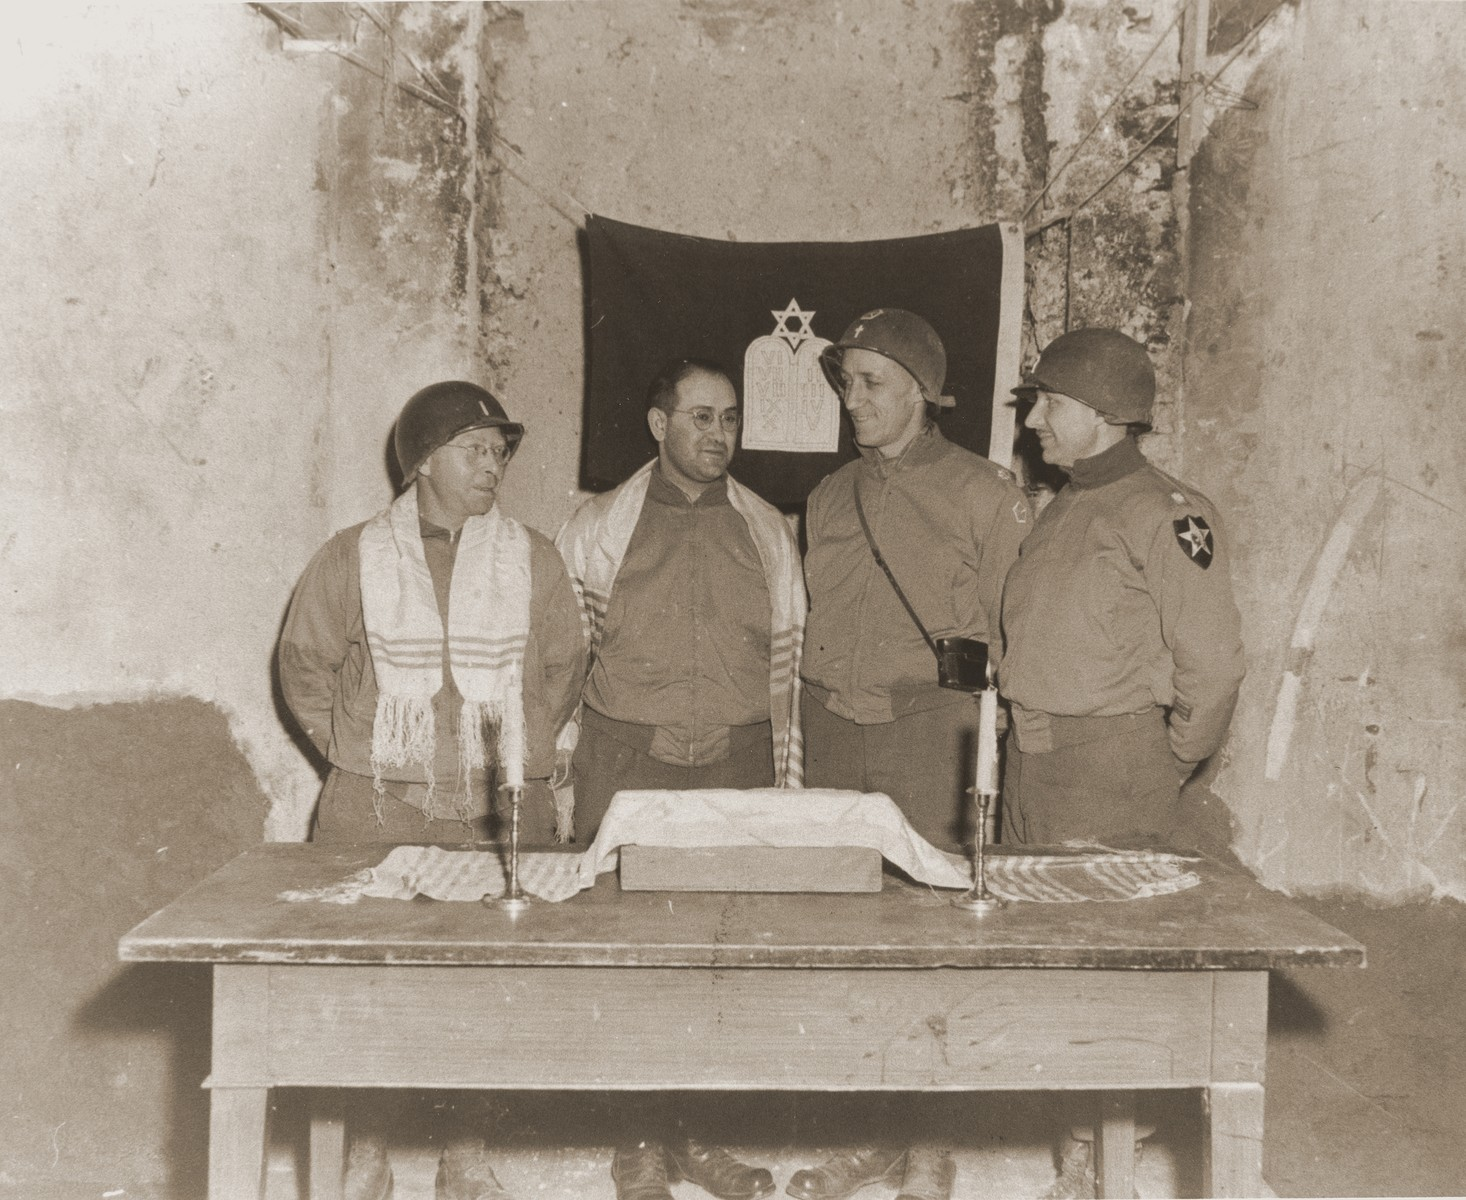 Chaplain Samson Goldstein conducts services in the partially restored Arnweiler synagogue, which was desecrated by Nazis in 1938.